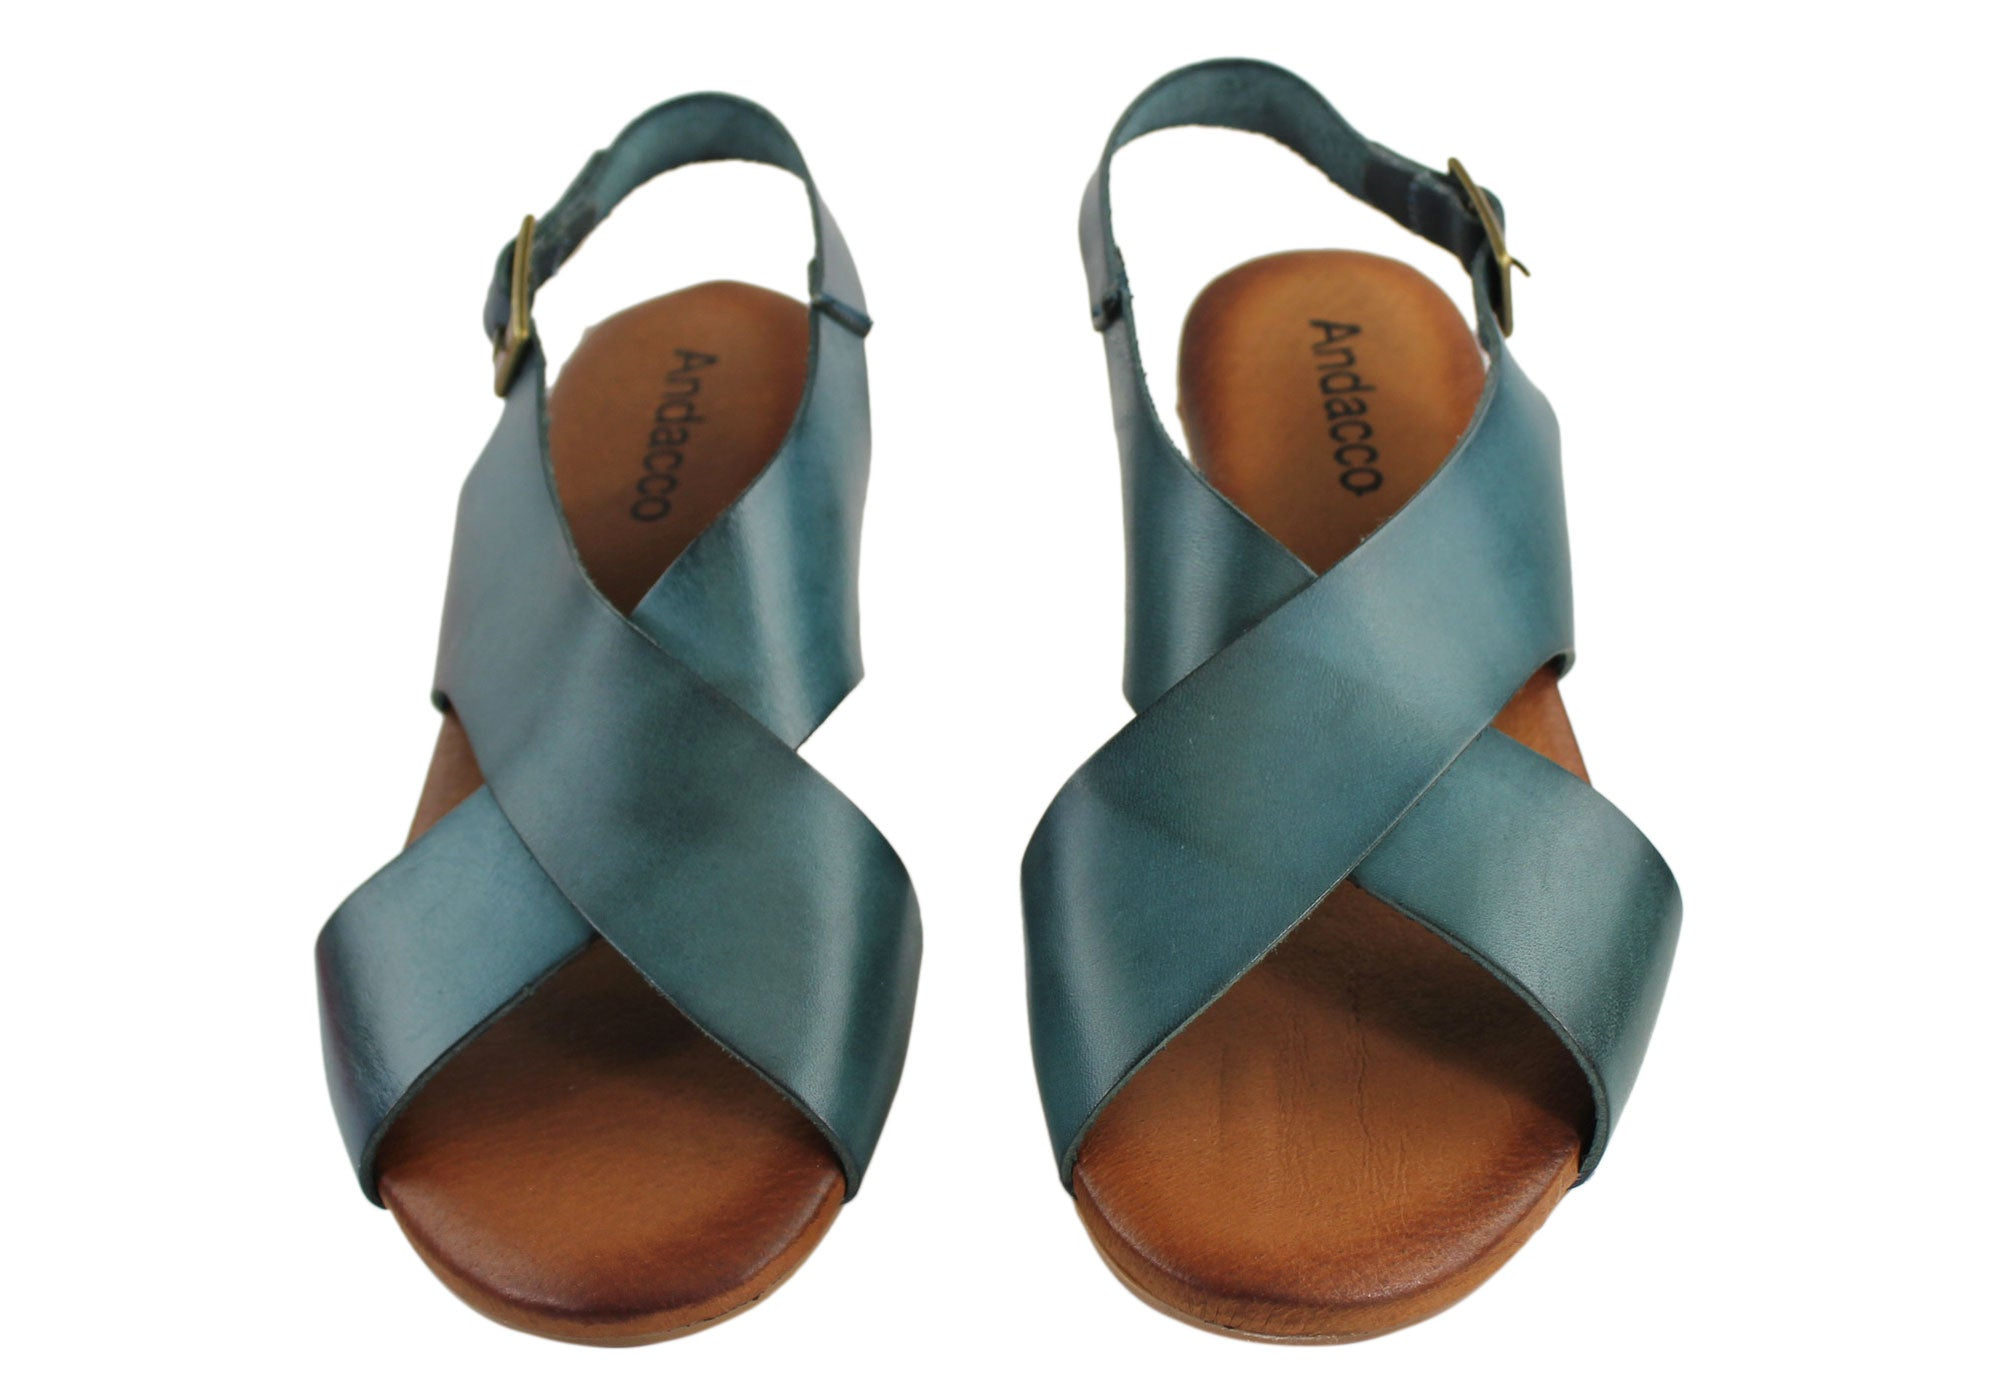 Andacco 16301 Vaquetilla Womens Sandals Made In Spain